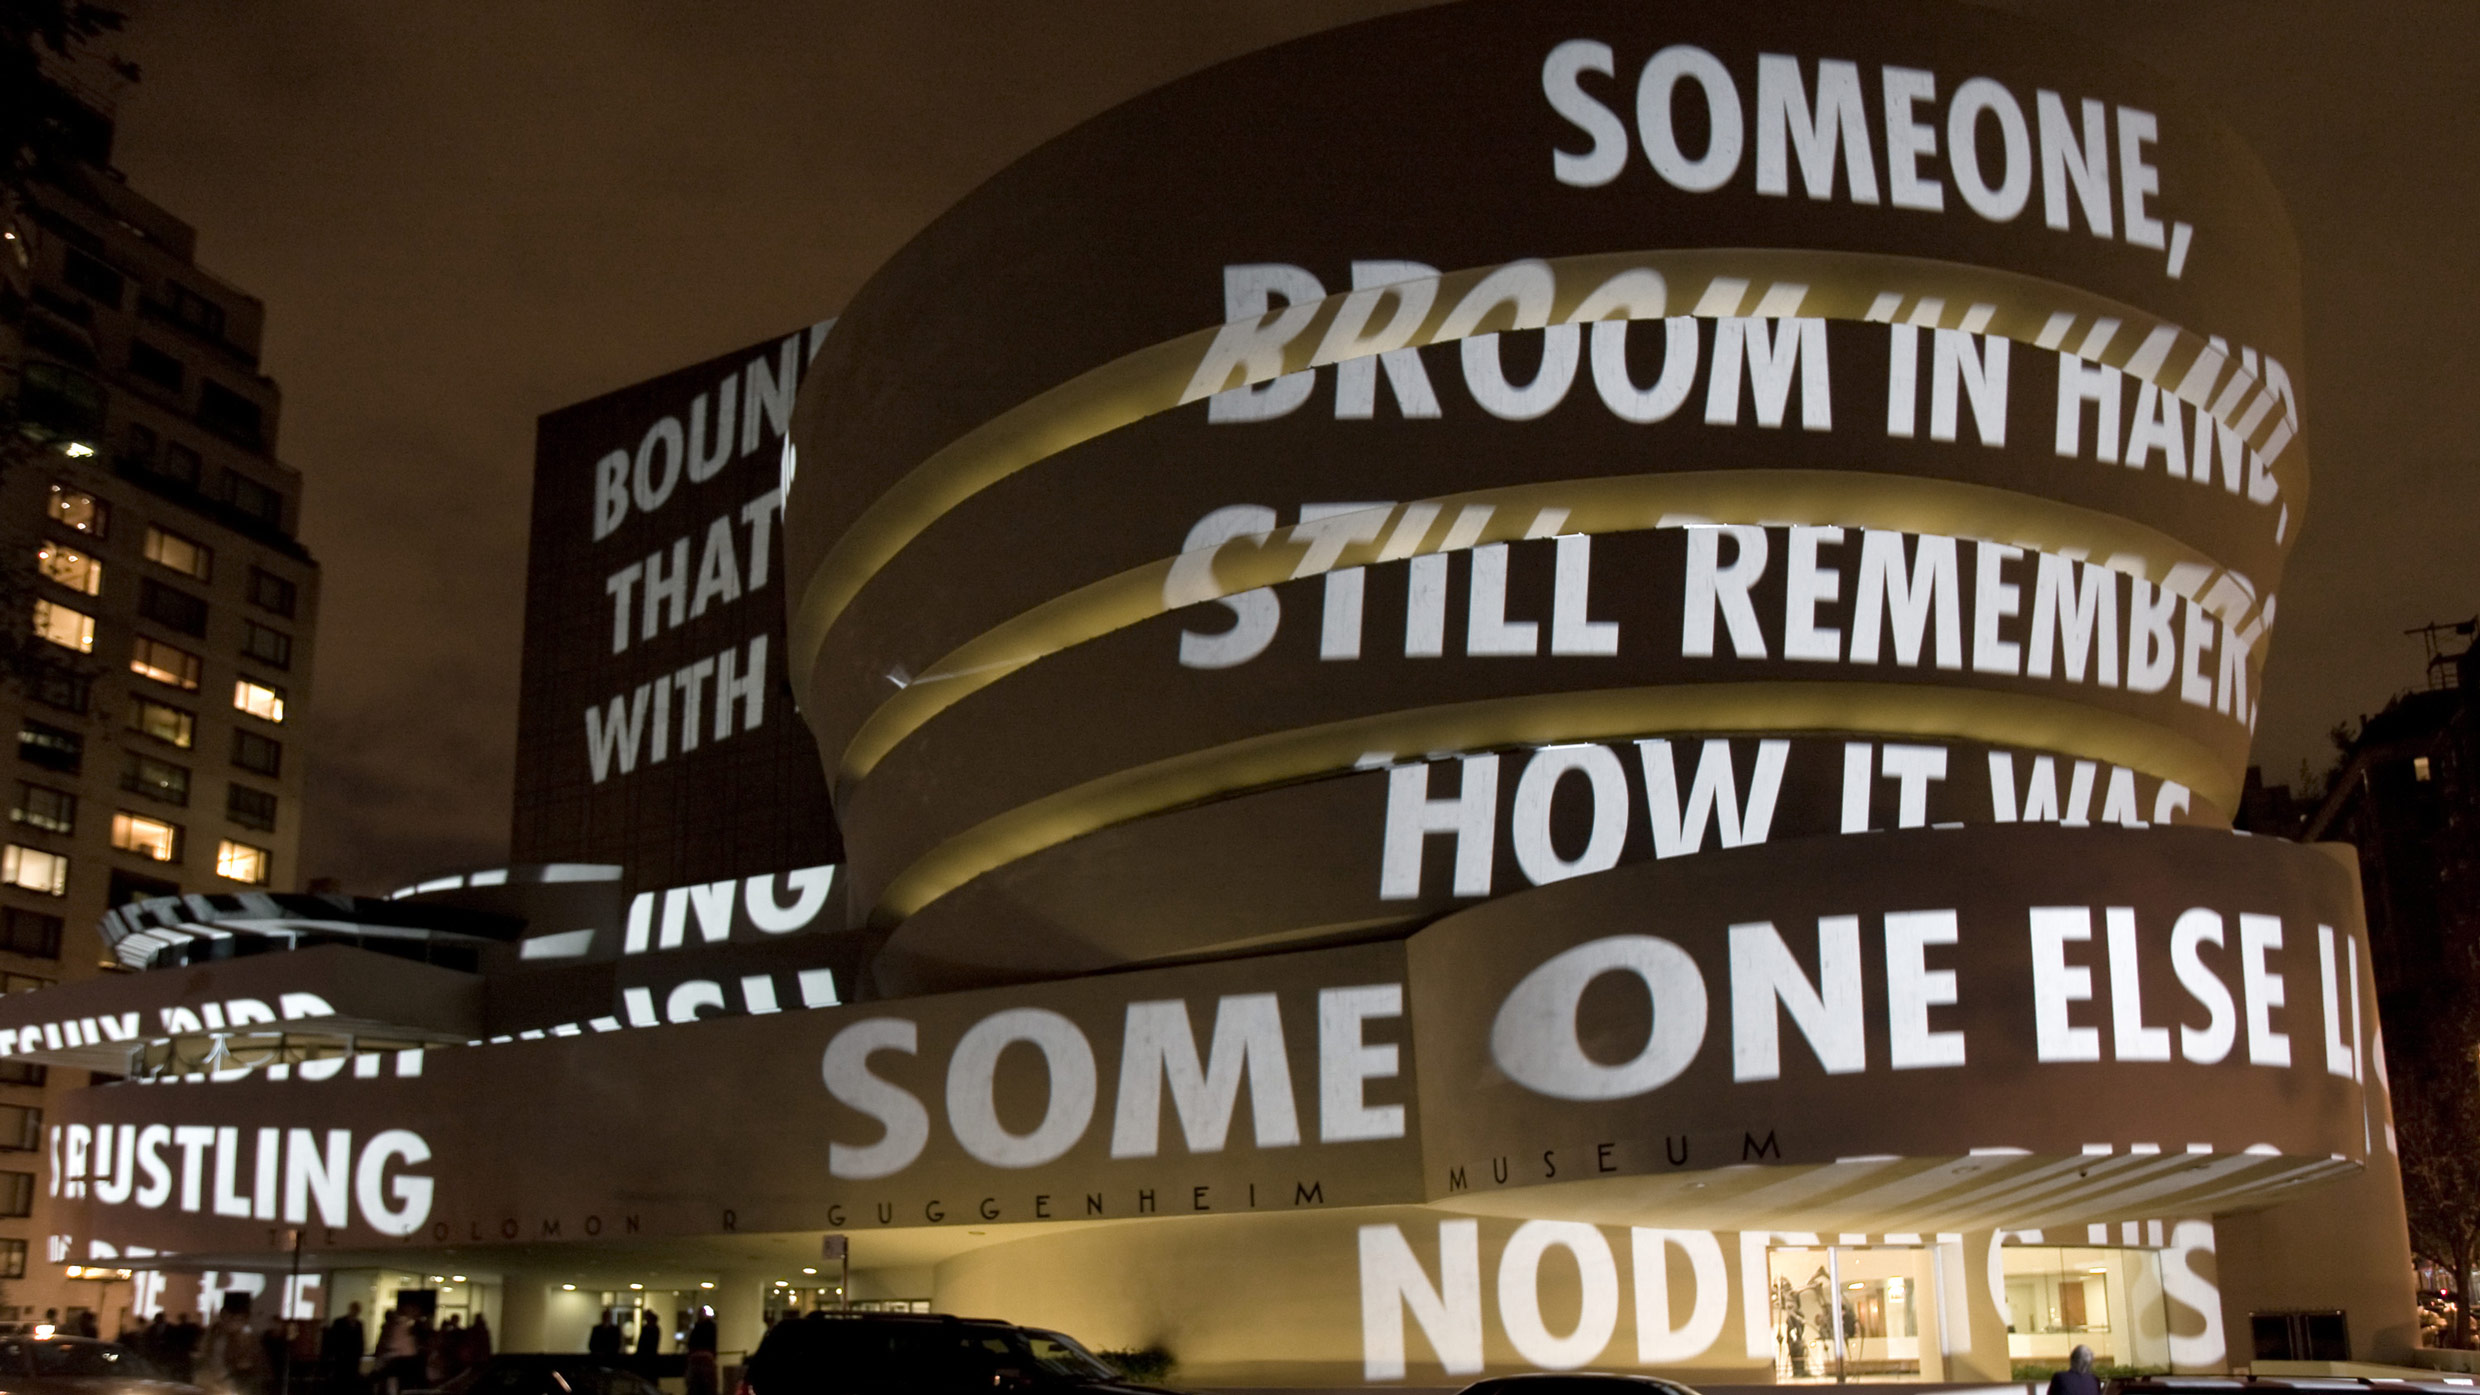 installation-srgm-jenny-holzer-for-the-guggenheim-unveiling-ceremony-ph024